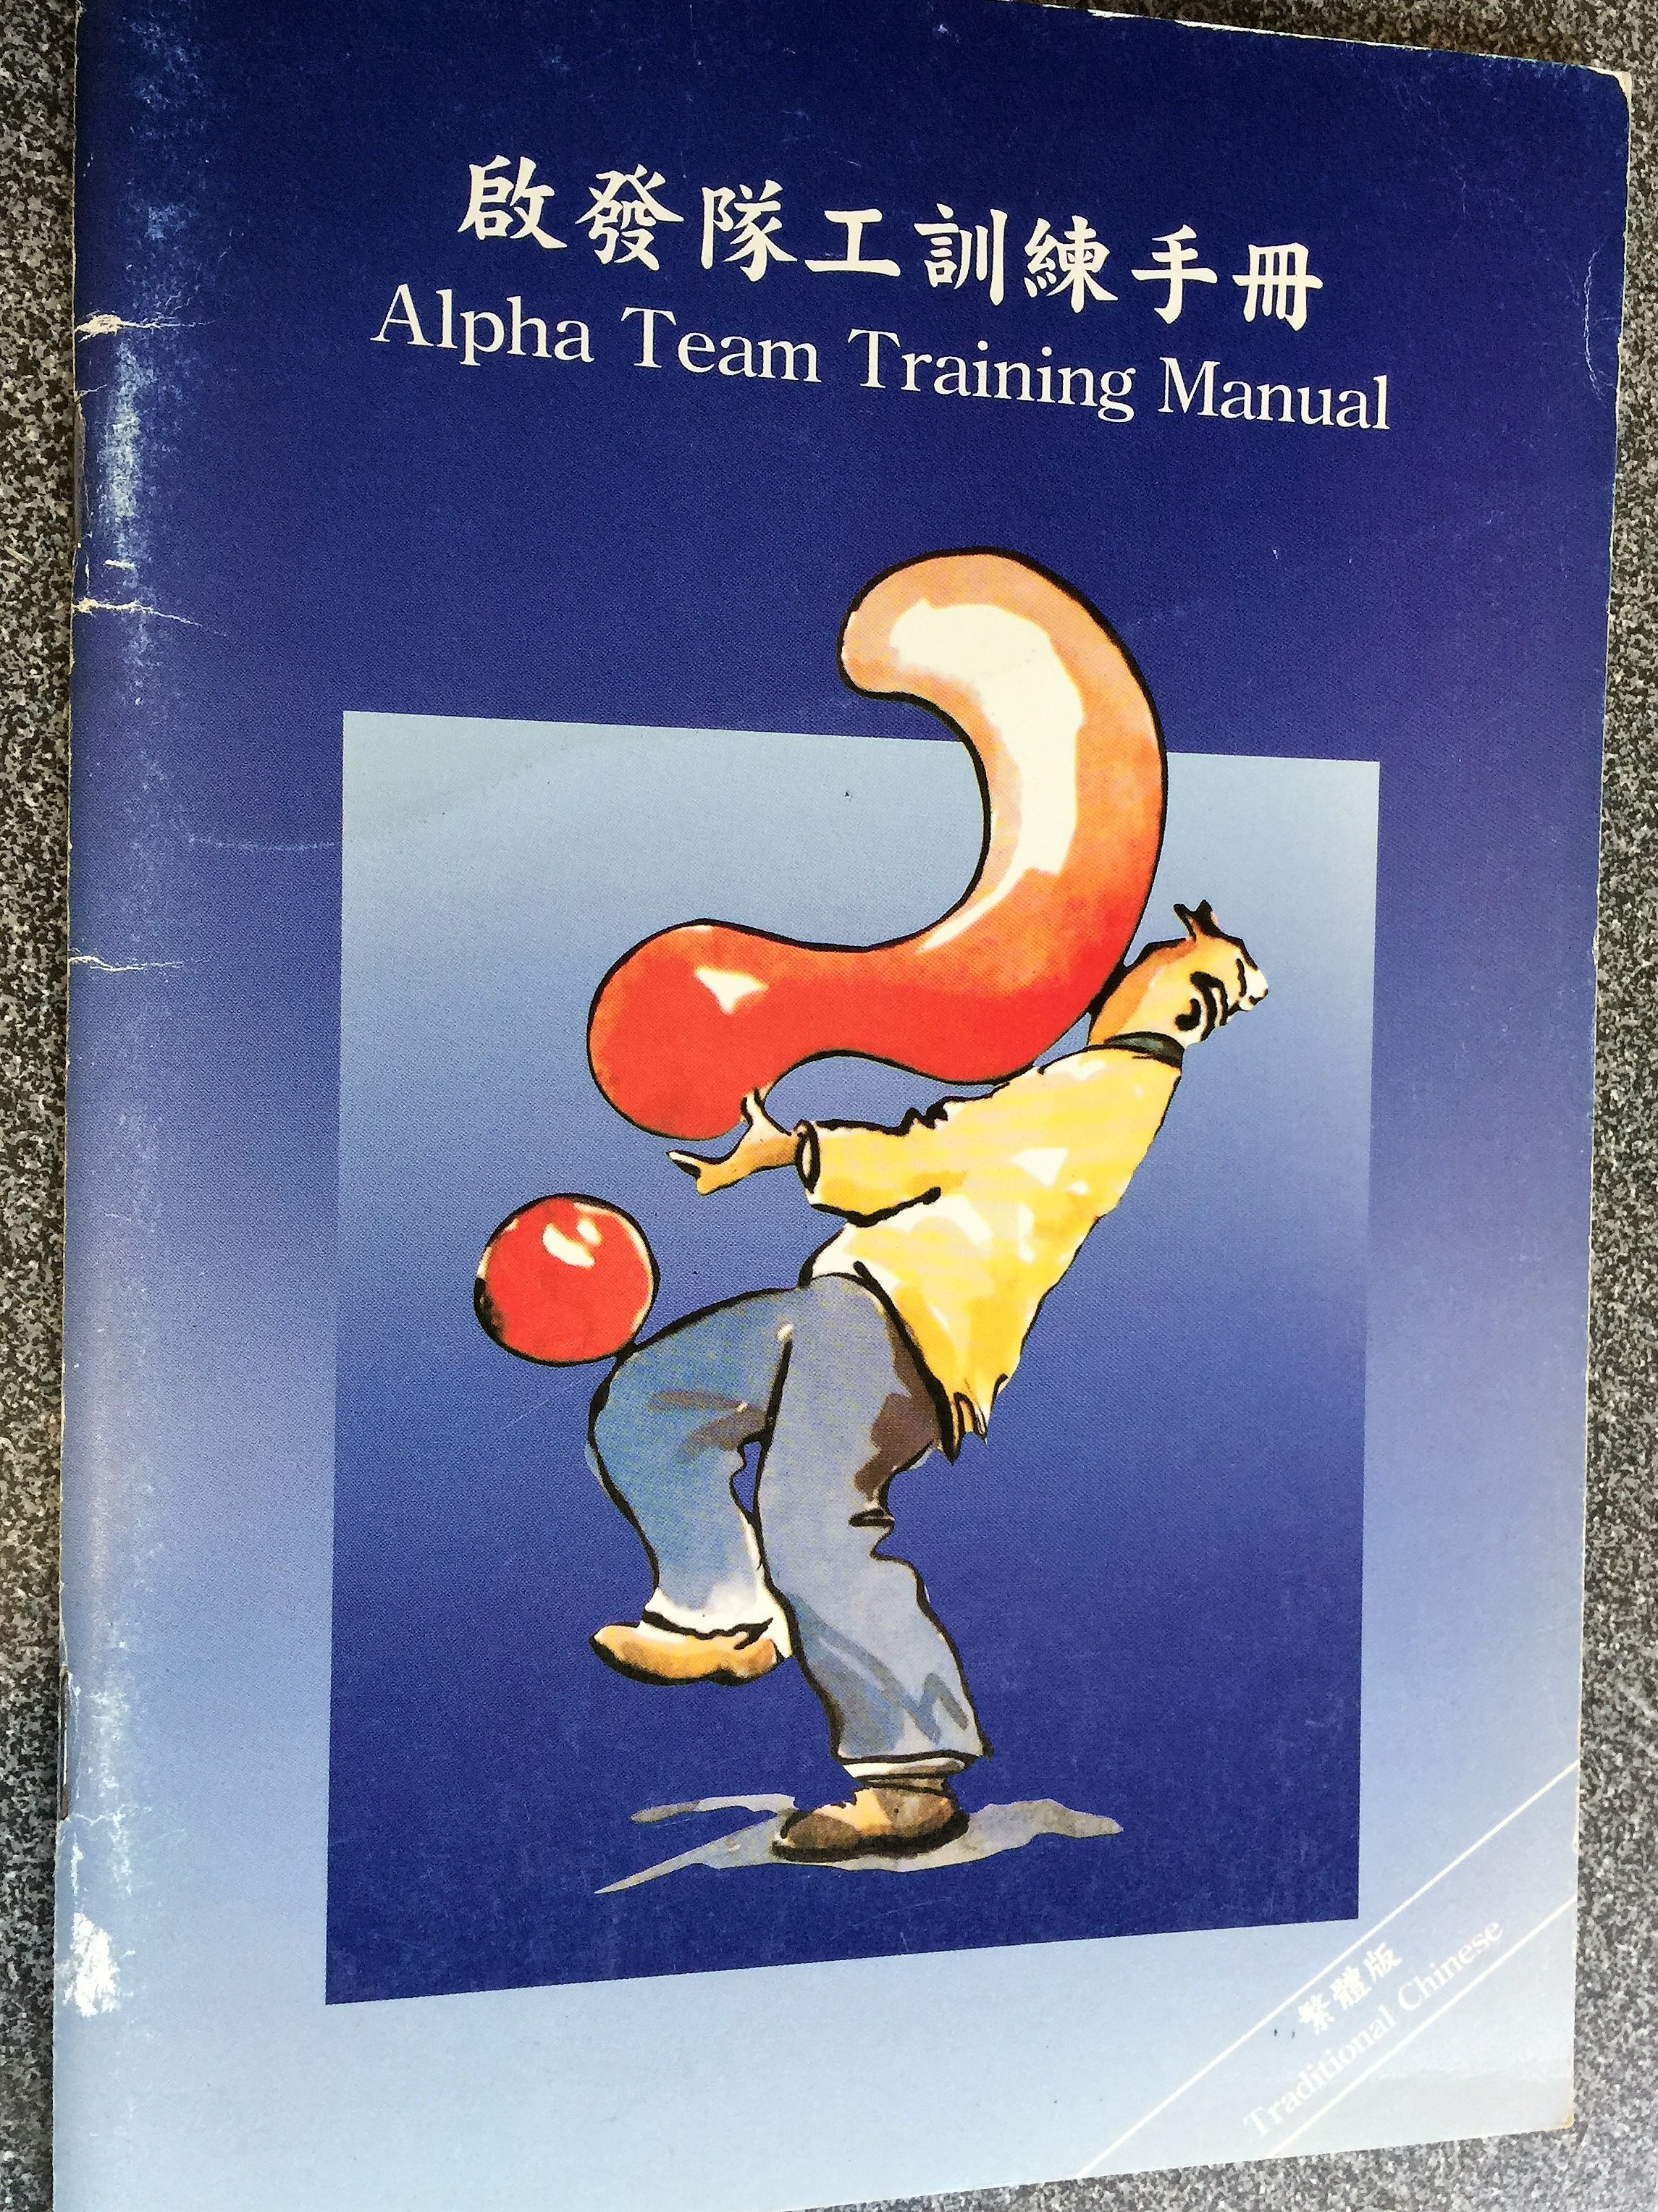 alpha-team-training-manual-traditional-chinese-version-1.jpg